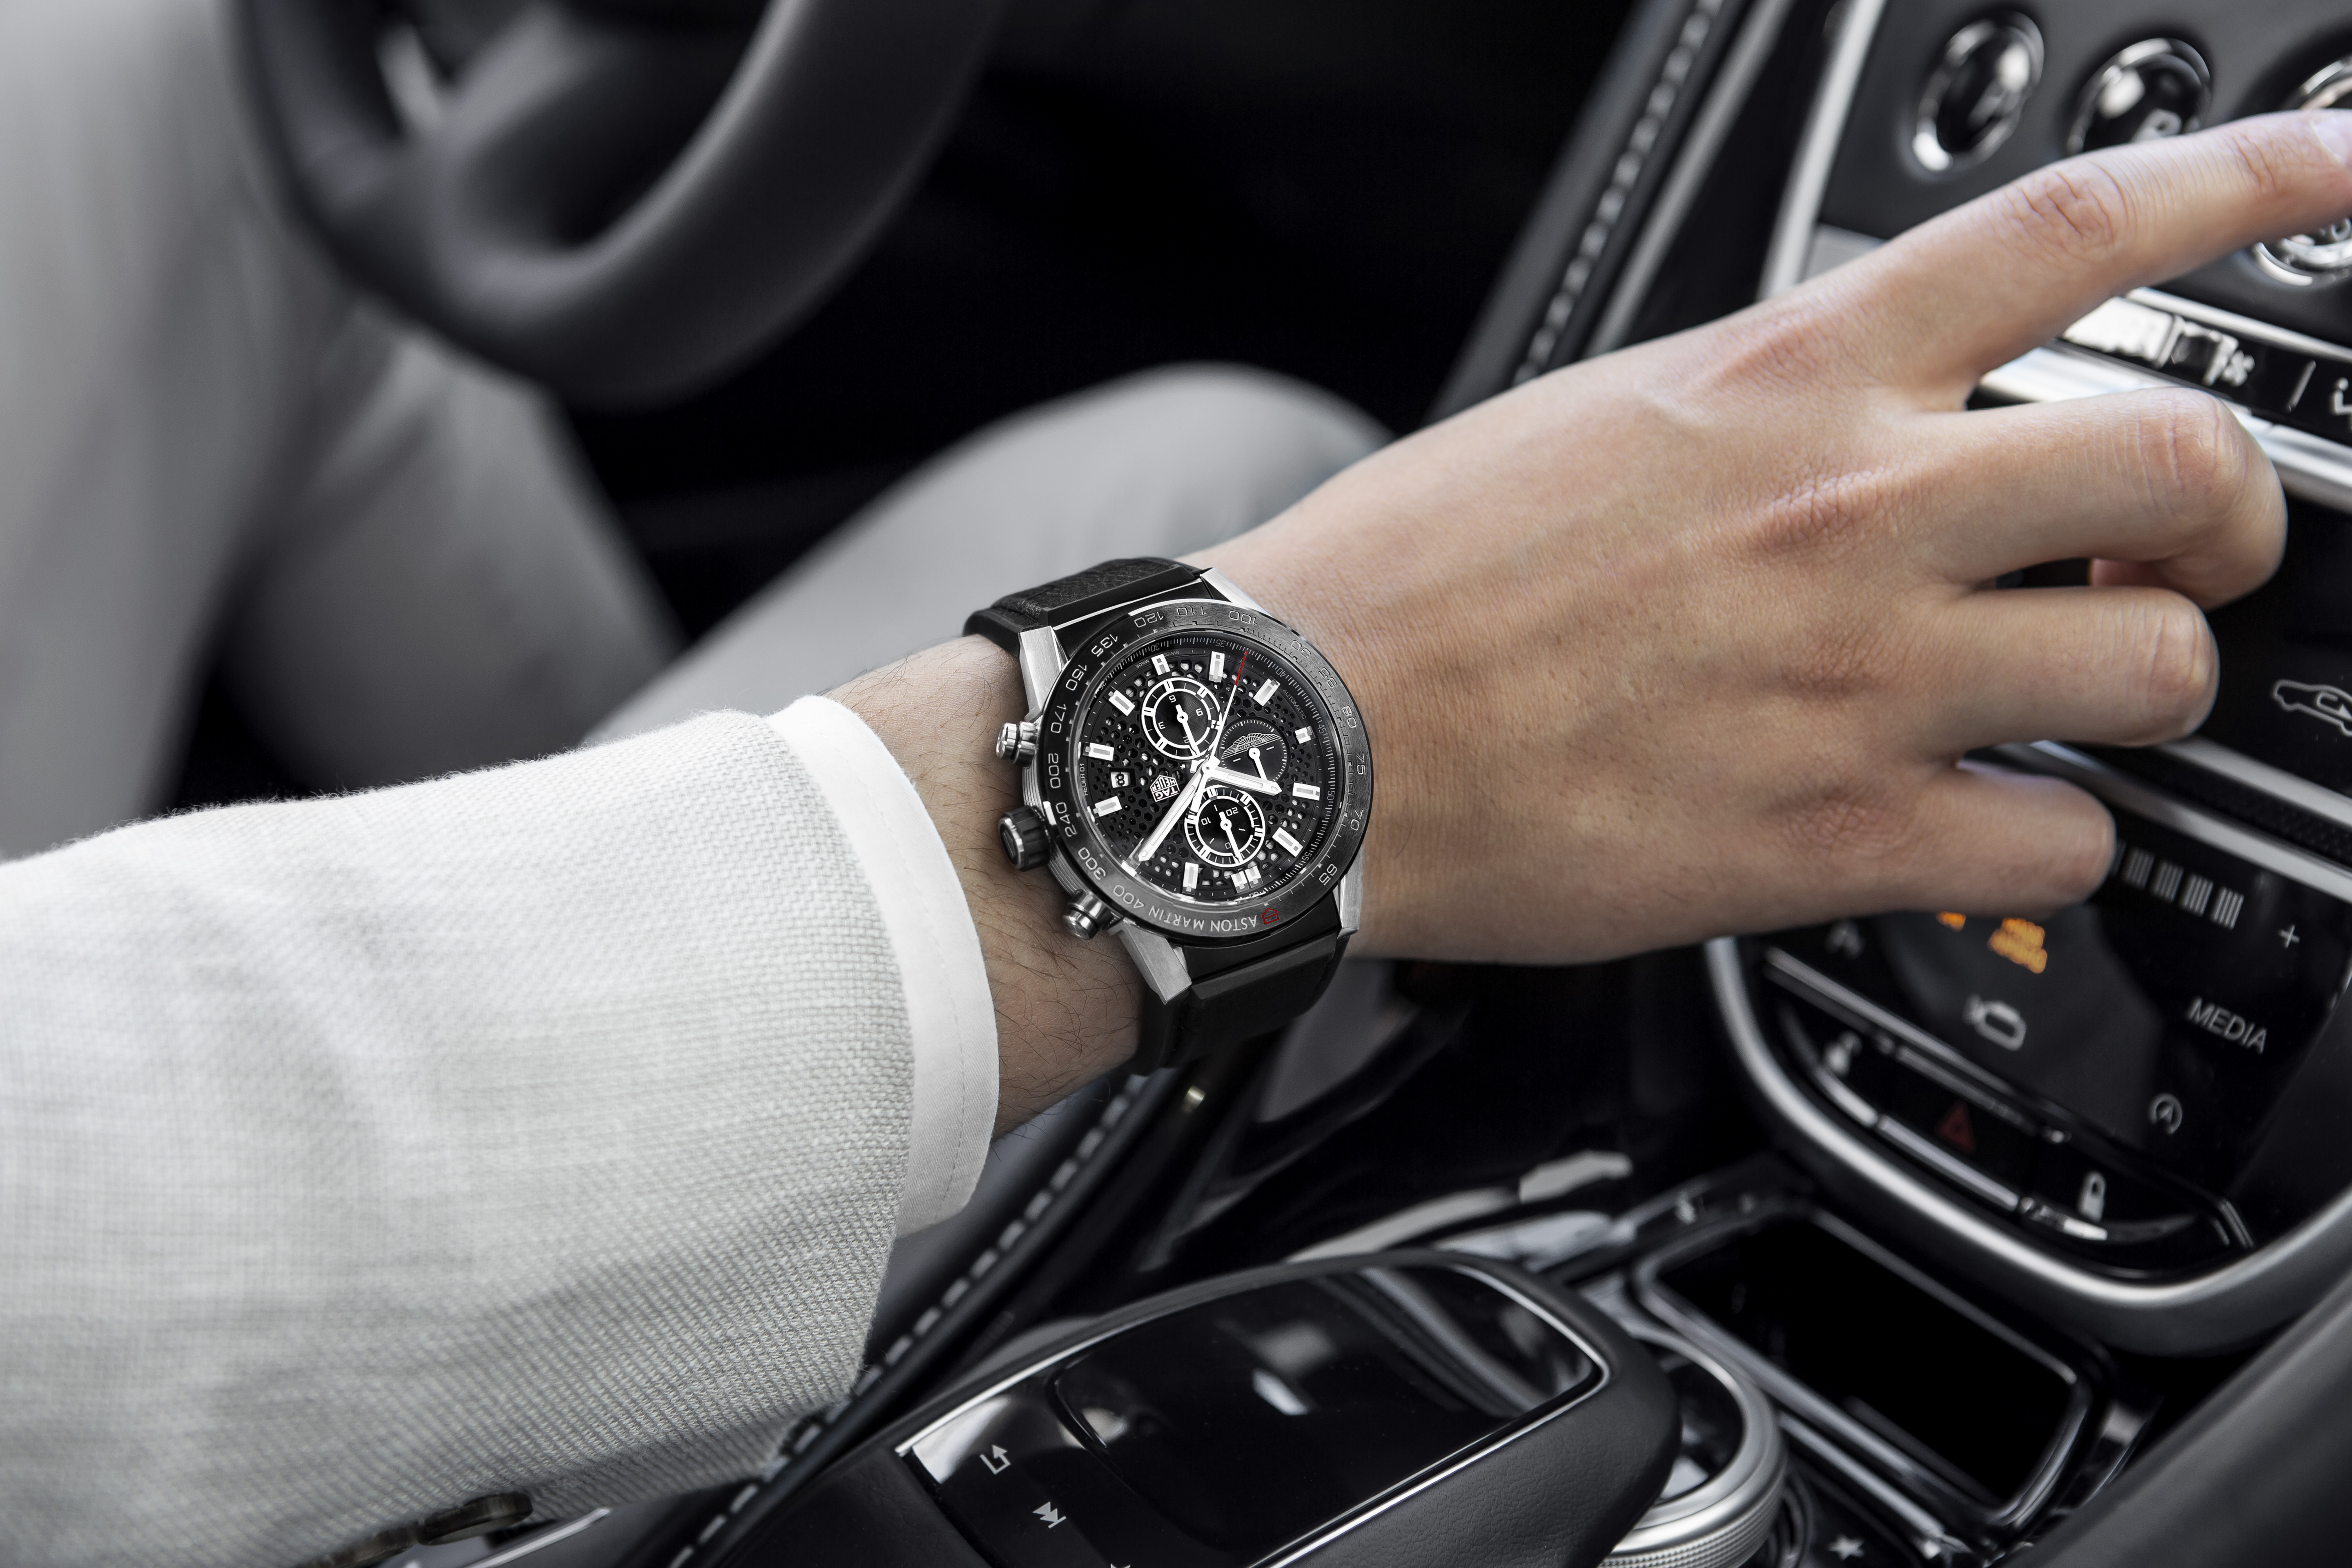 The Second TAG Heuer, Aston Martin is now available